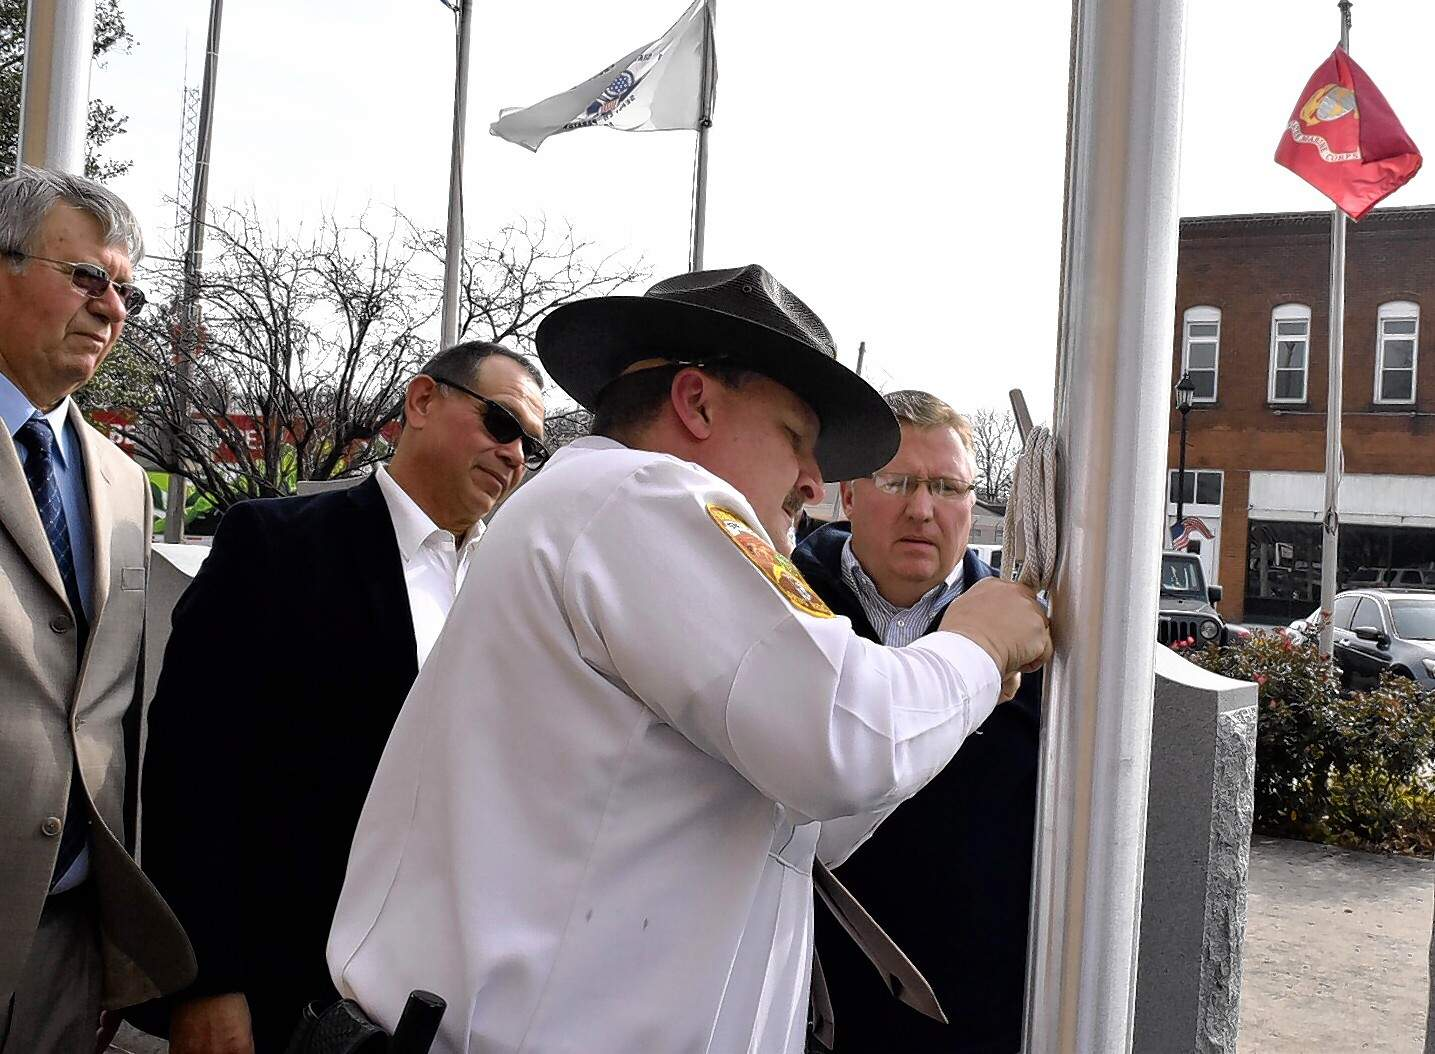 Perry County Sheriff Steve Bareis ties the bicentennial flag as Perry County Commissioners James Epplin, Robert Kelly and Dallas Bigham look on.